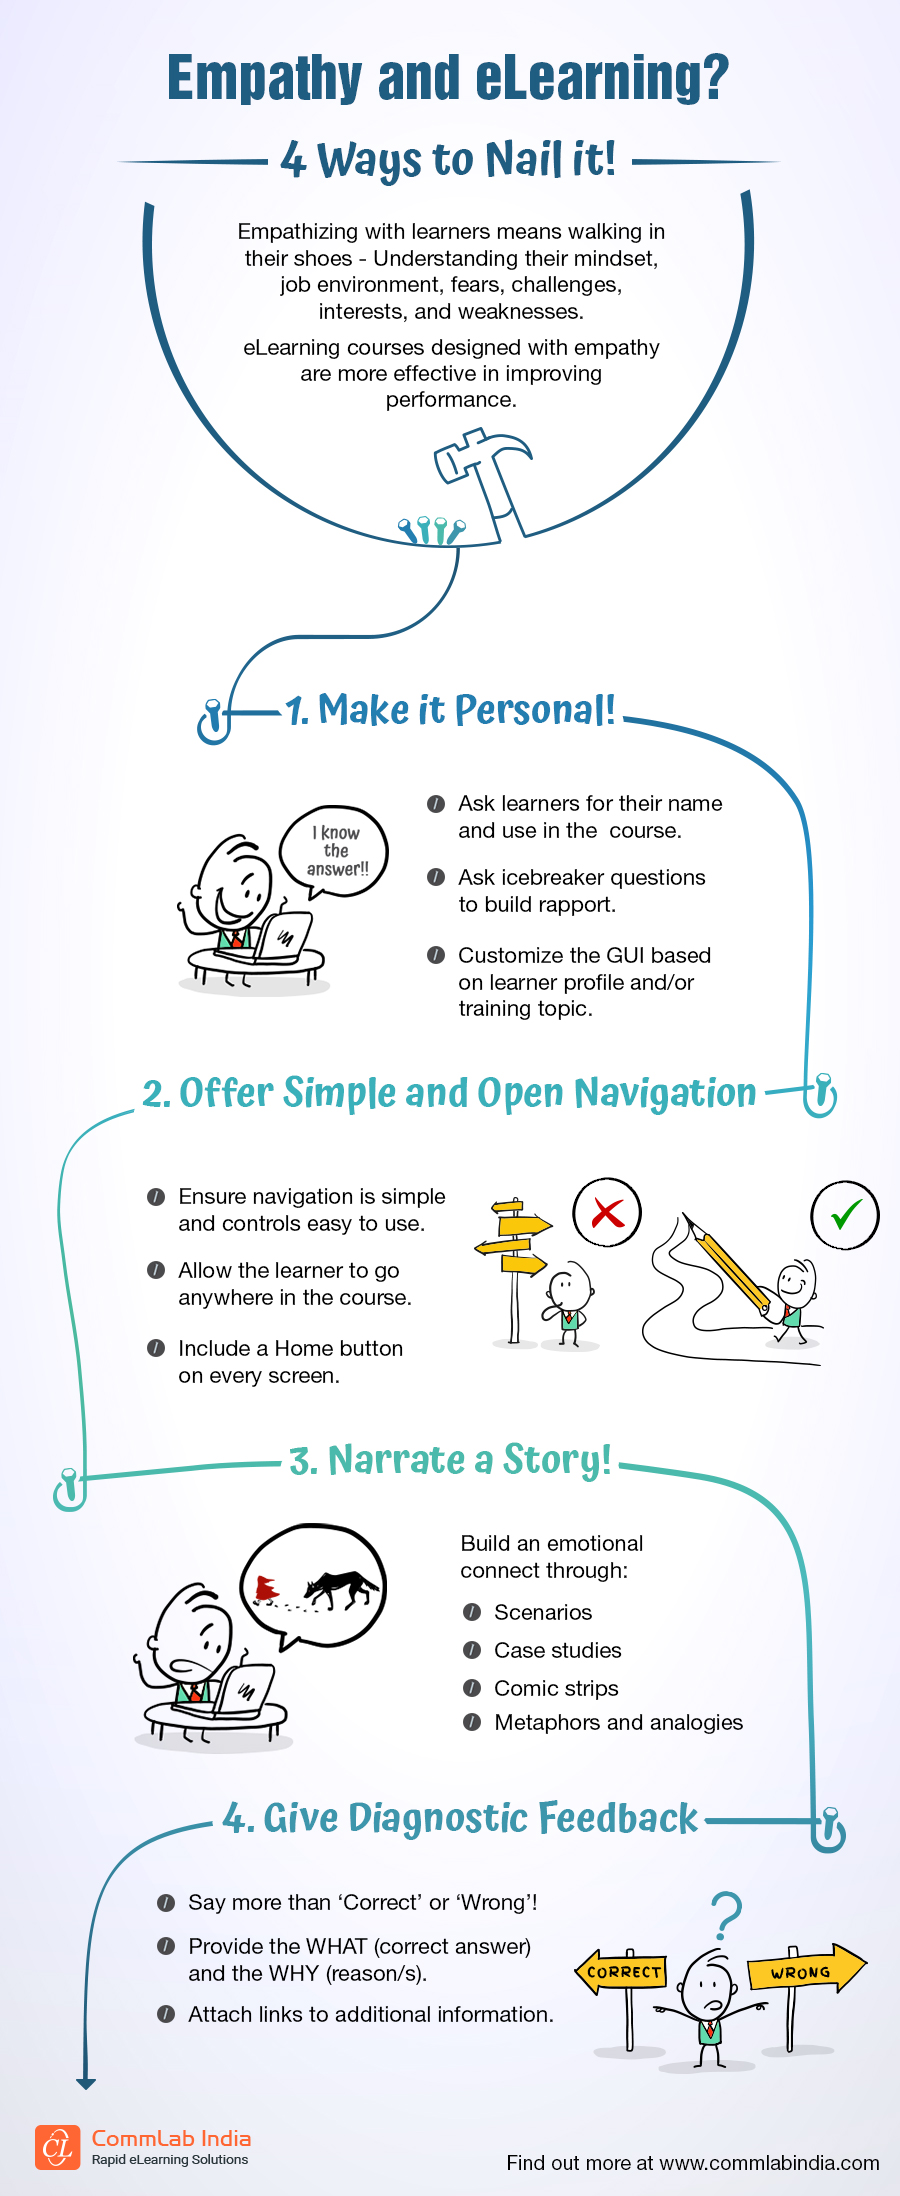 Empathy and eLearning? 4 Ways to Nail It [Infographic]